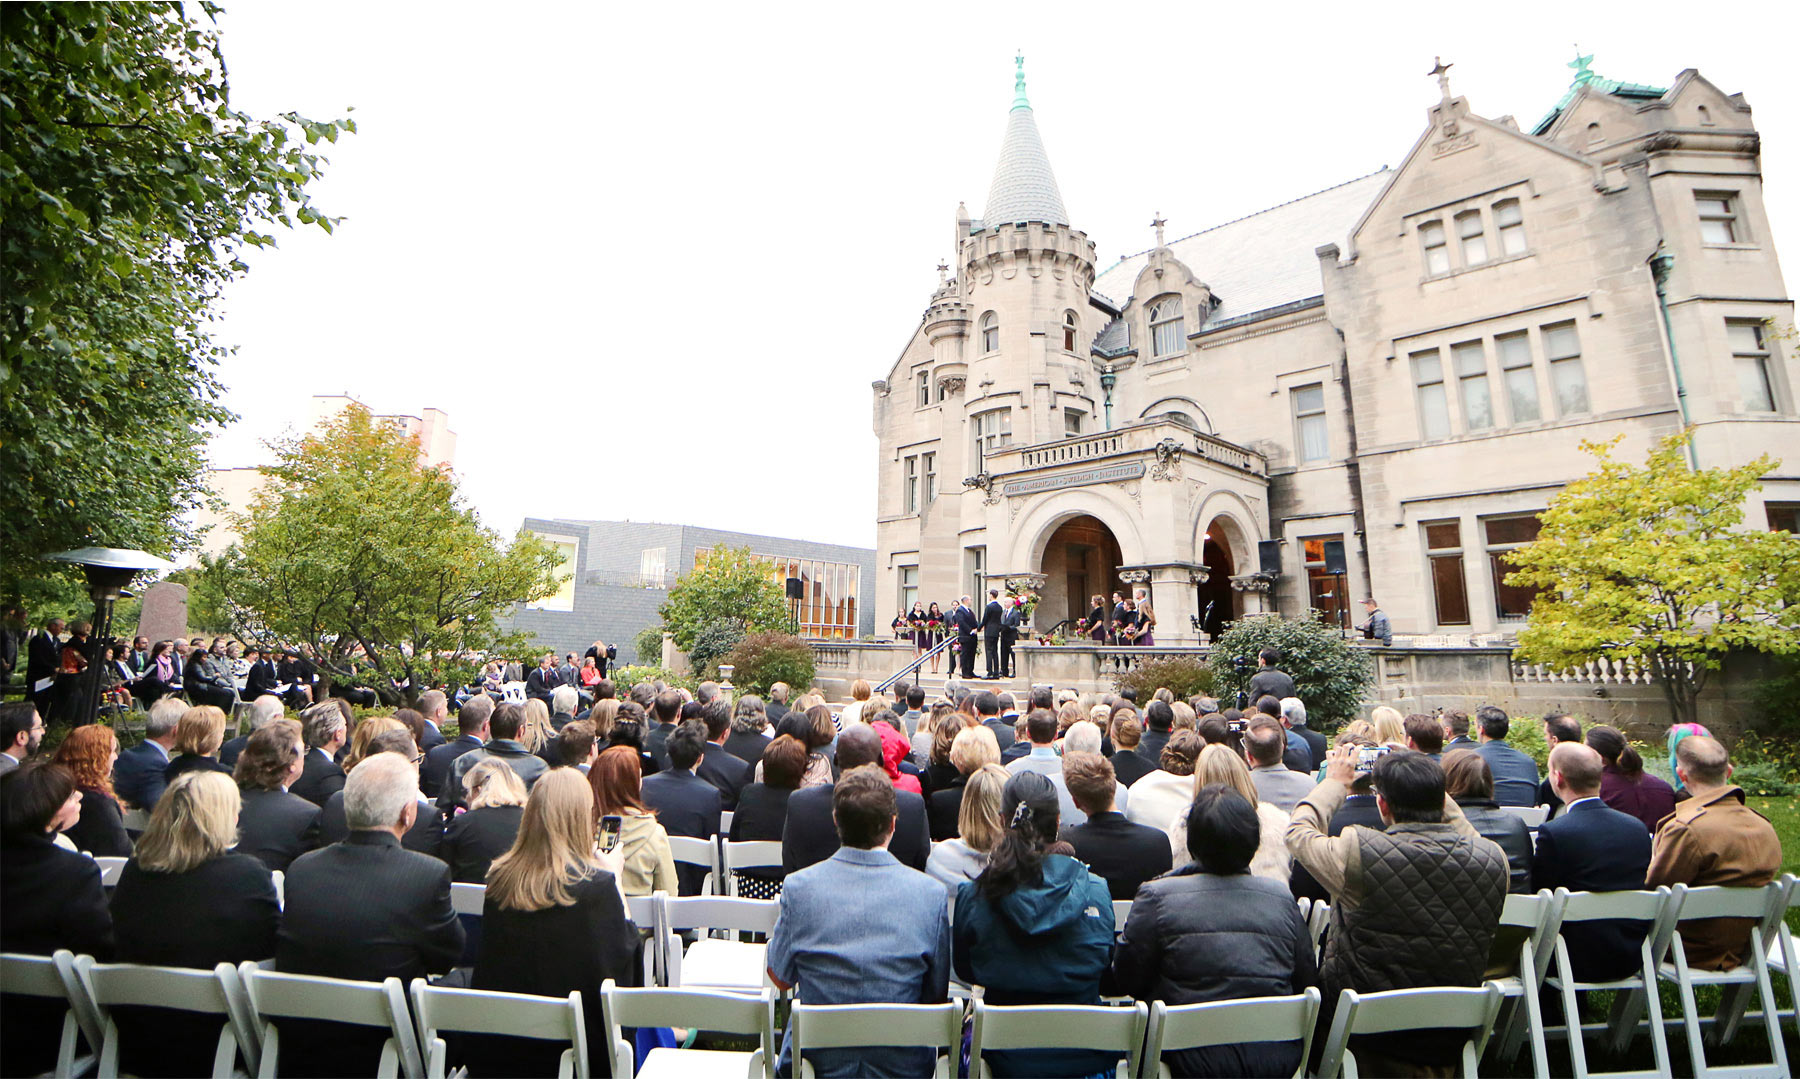 14-Minneapolis-Minnesota-Wedding-Photographer-by-Andrew-Vick-Photography-Fall-Autumn-American-Swedish-Institute-Ceremony-Groom-Guests-Ben-and-Adam.jpg